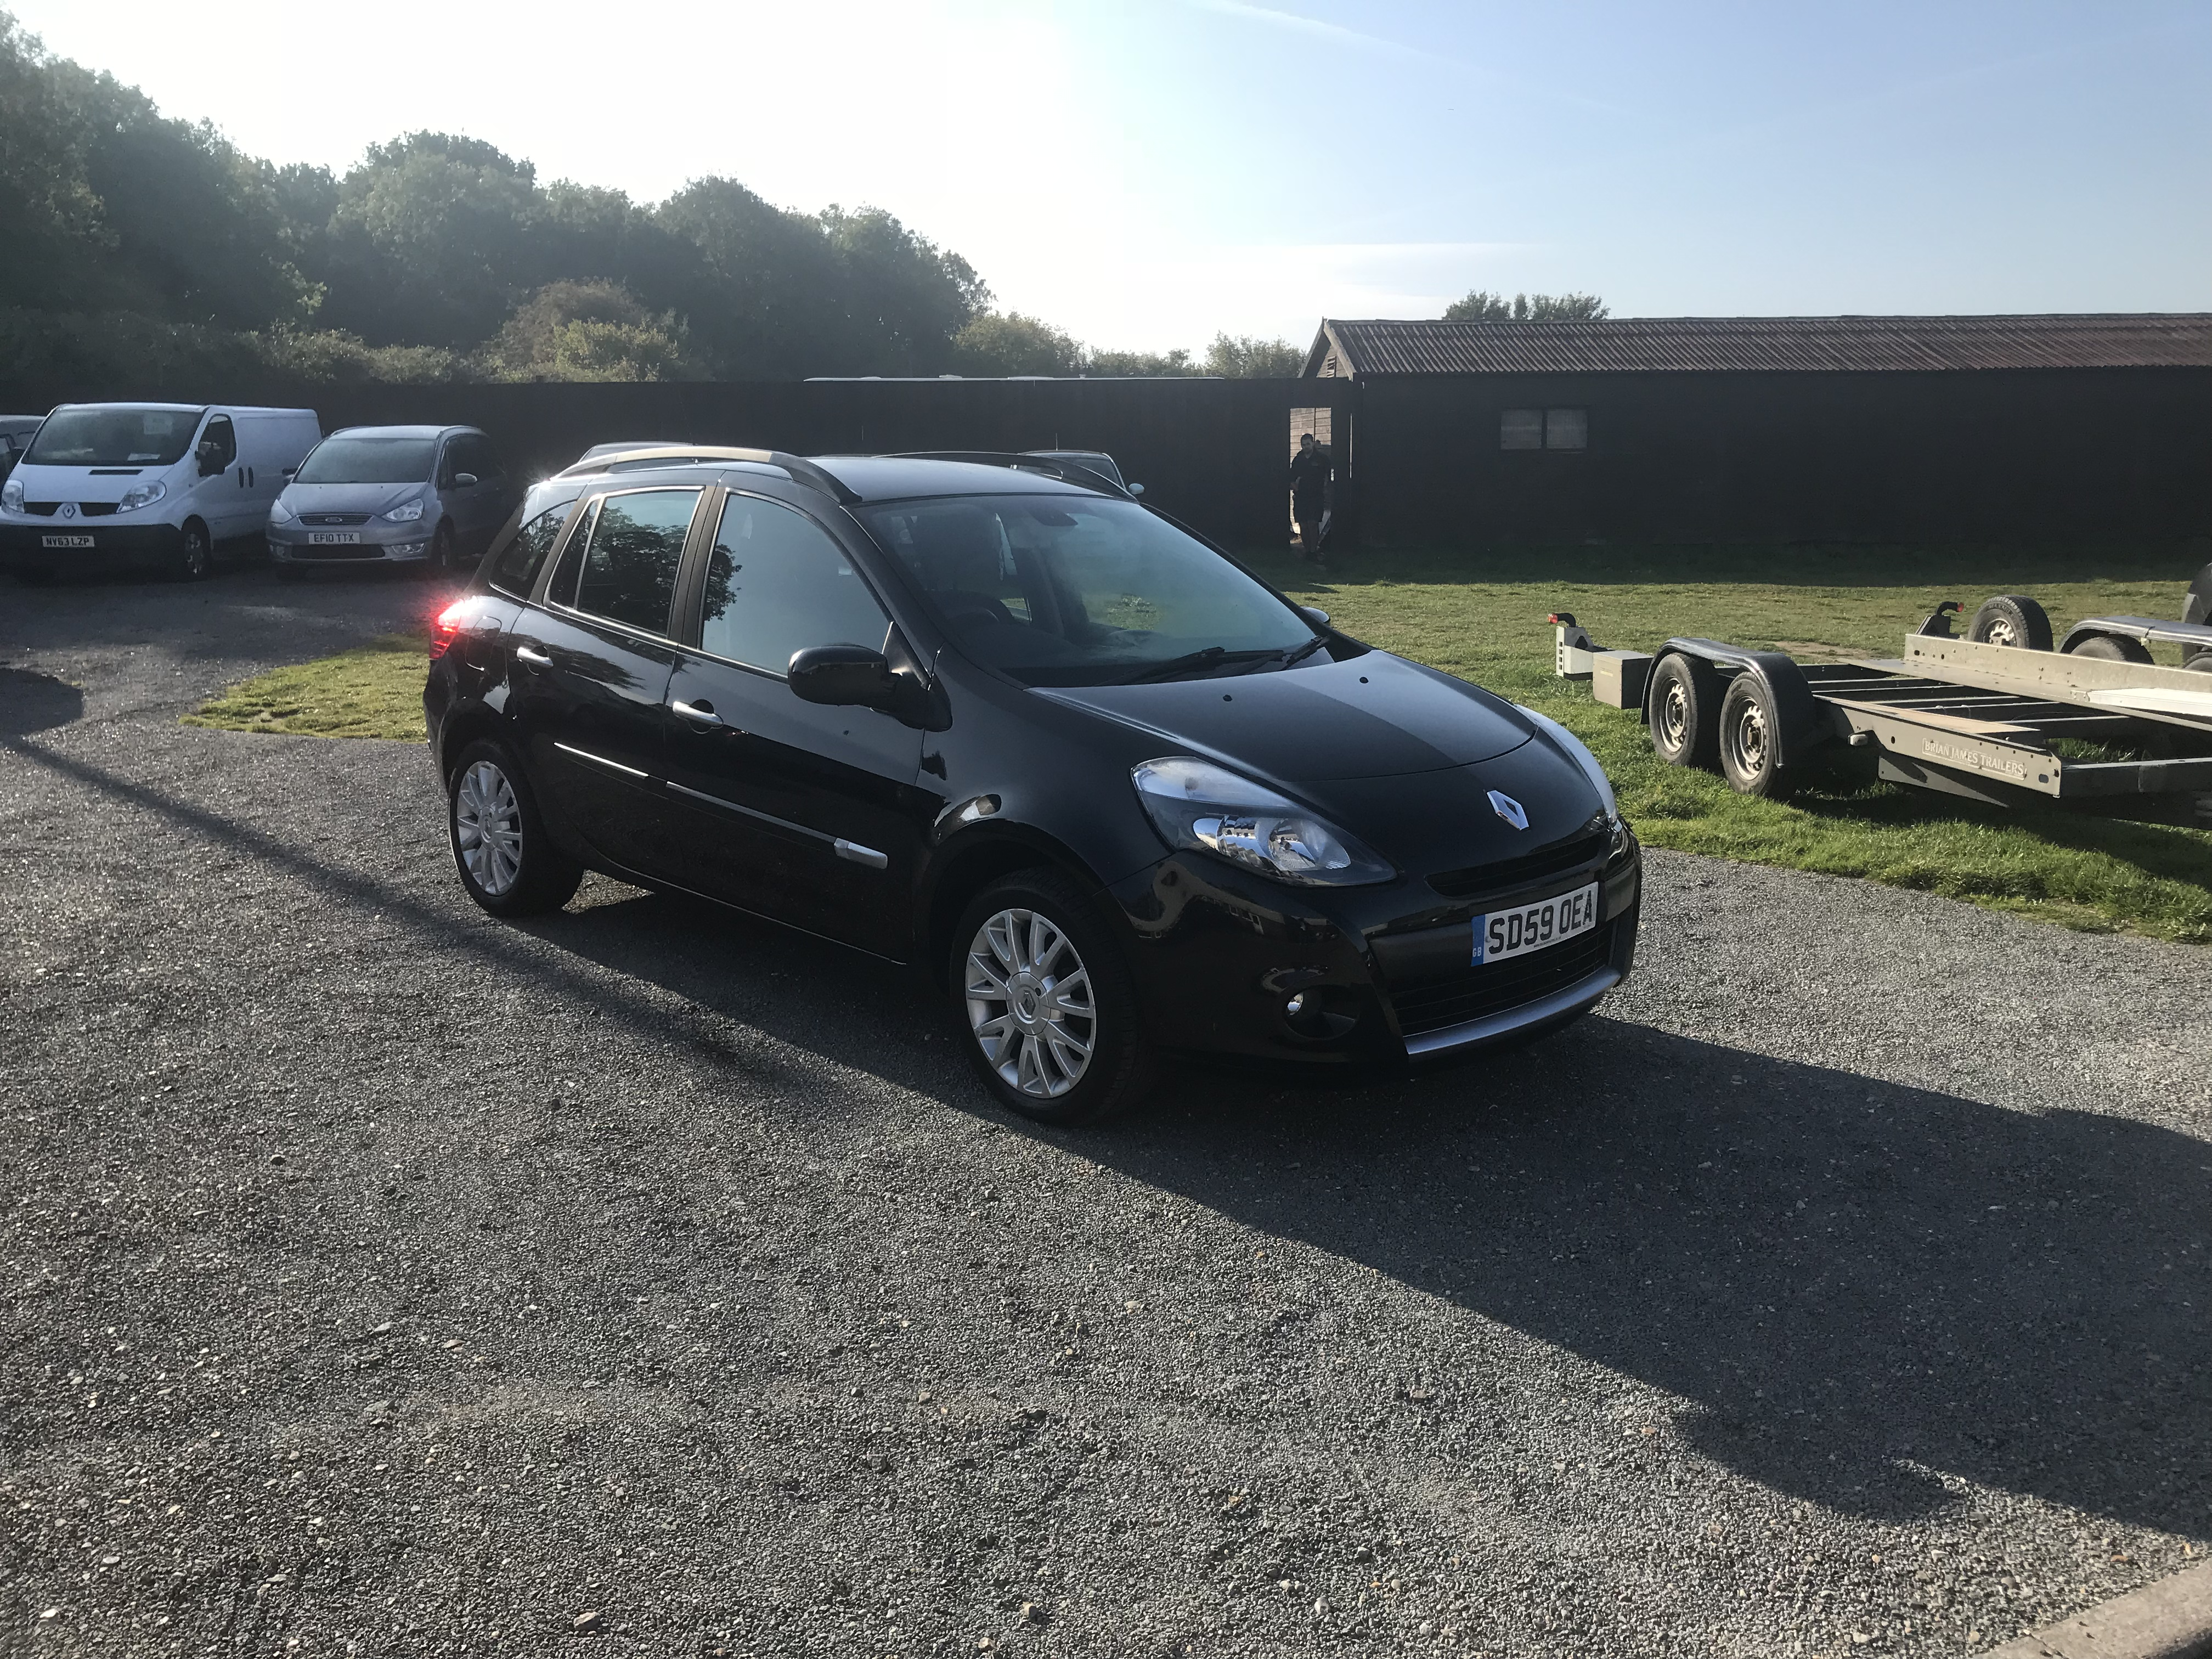 Renault Clio 1.2 Dynamique Estate (59 Reg) – Sold